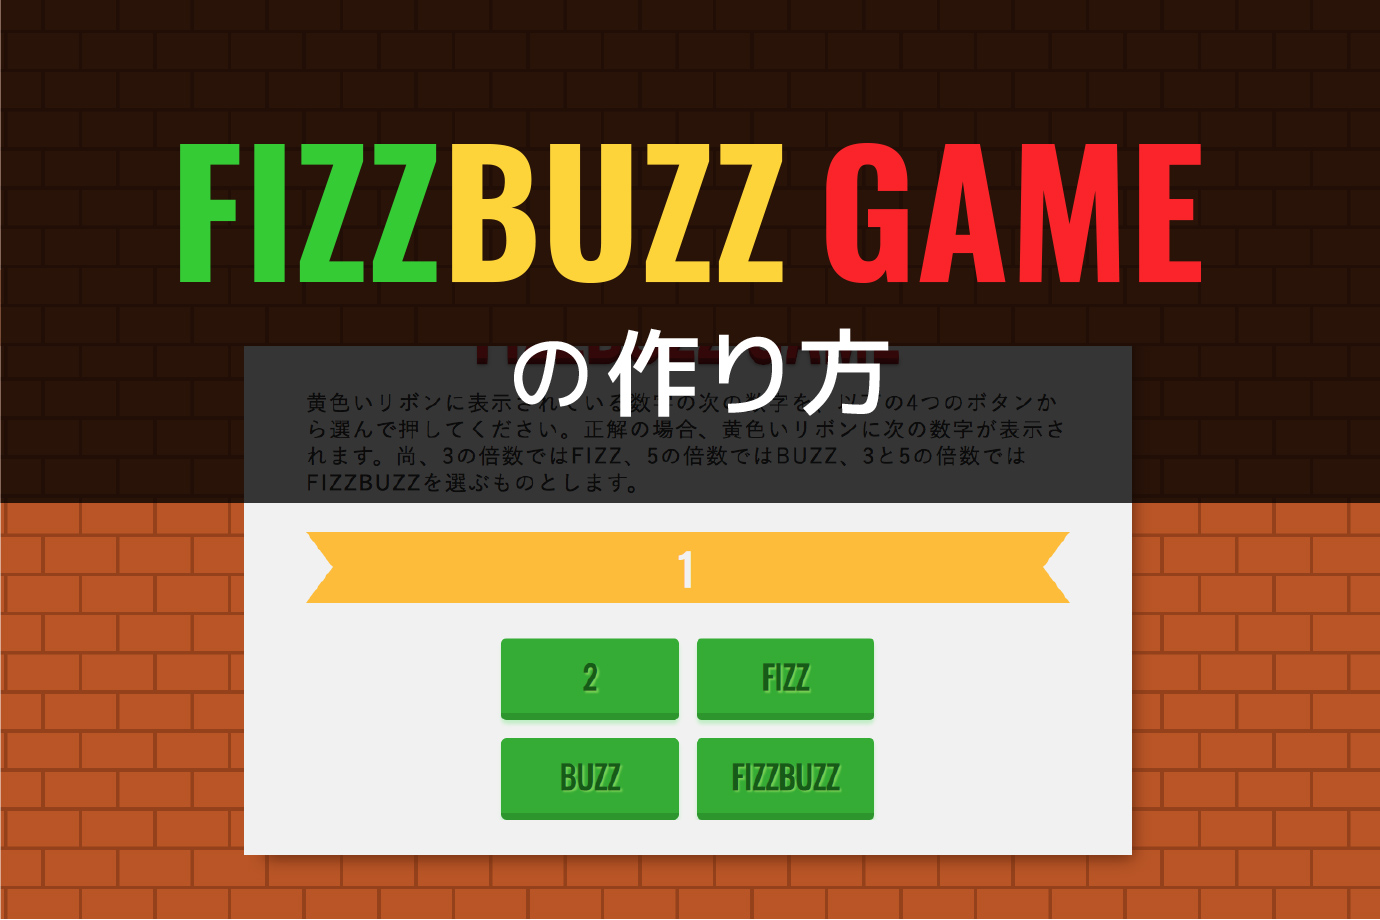 FIZZBUZZ GAMEの作り方